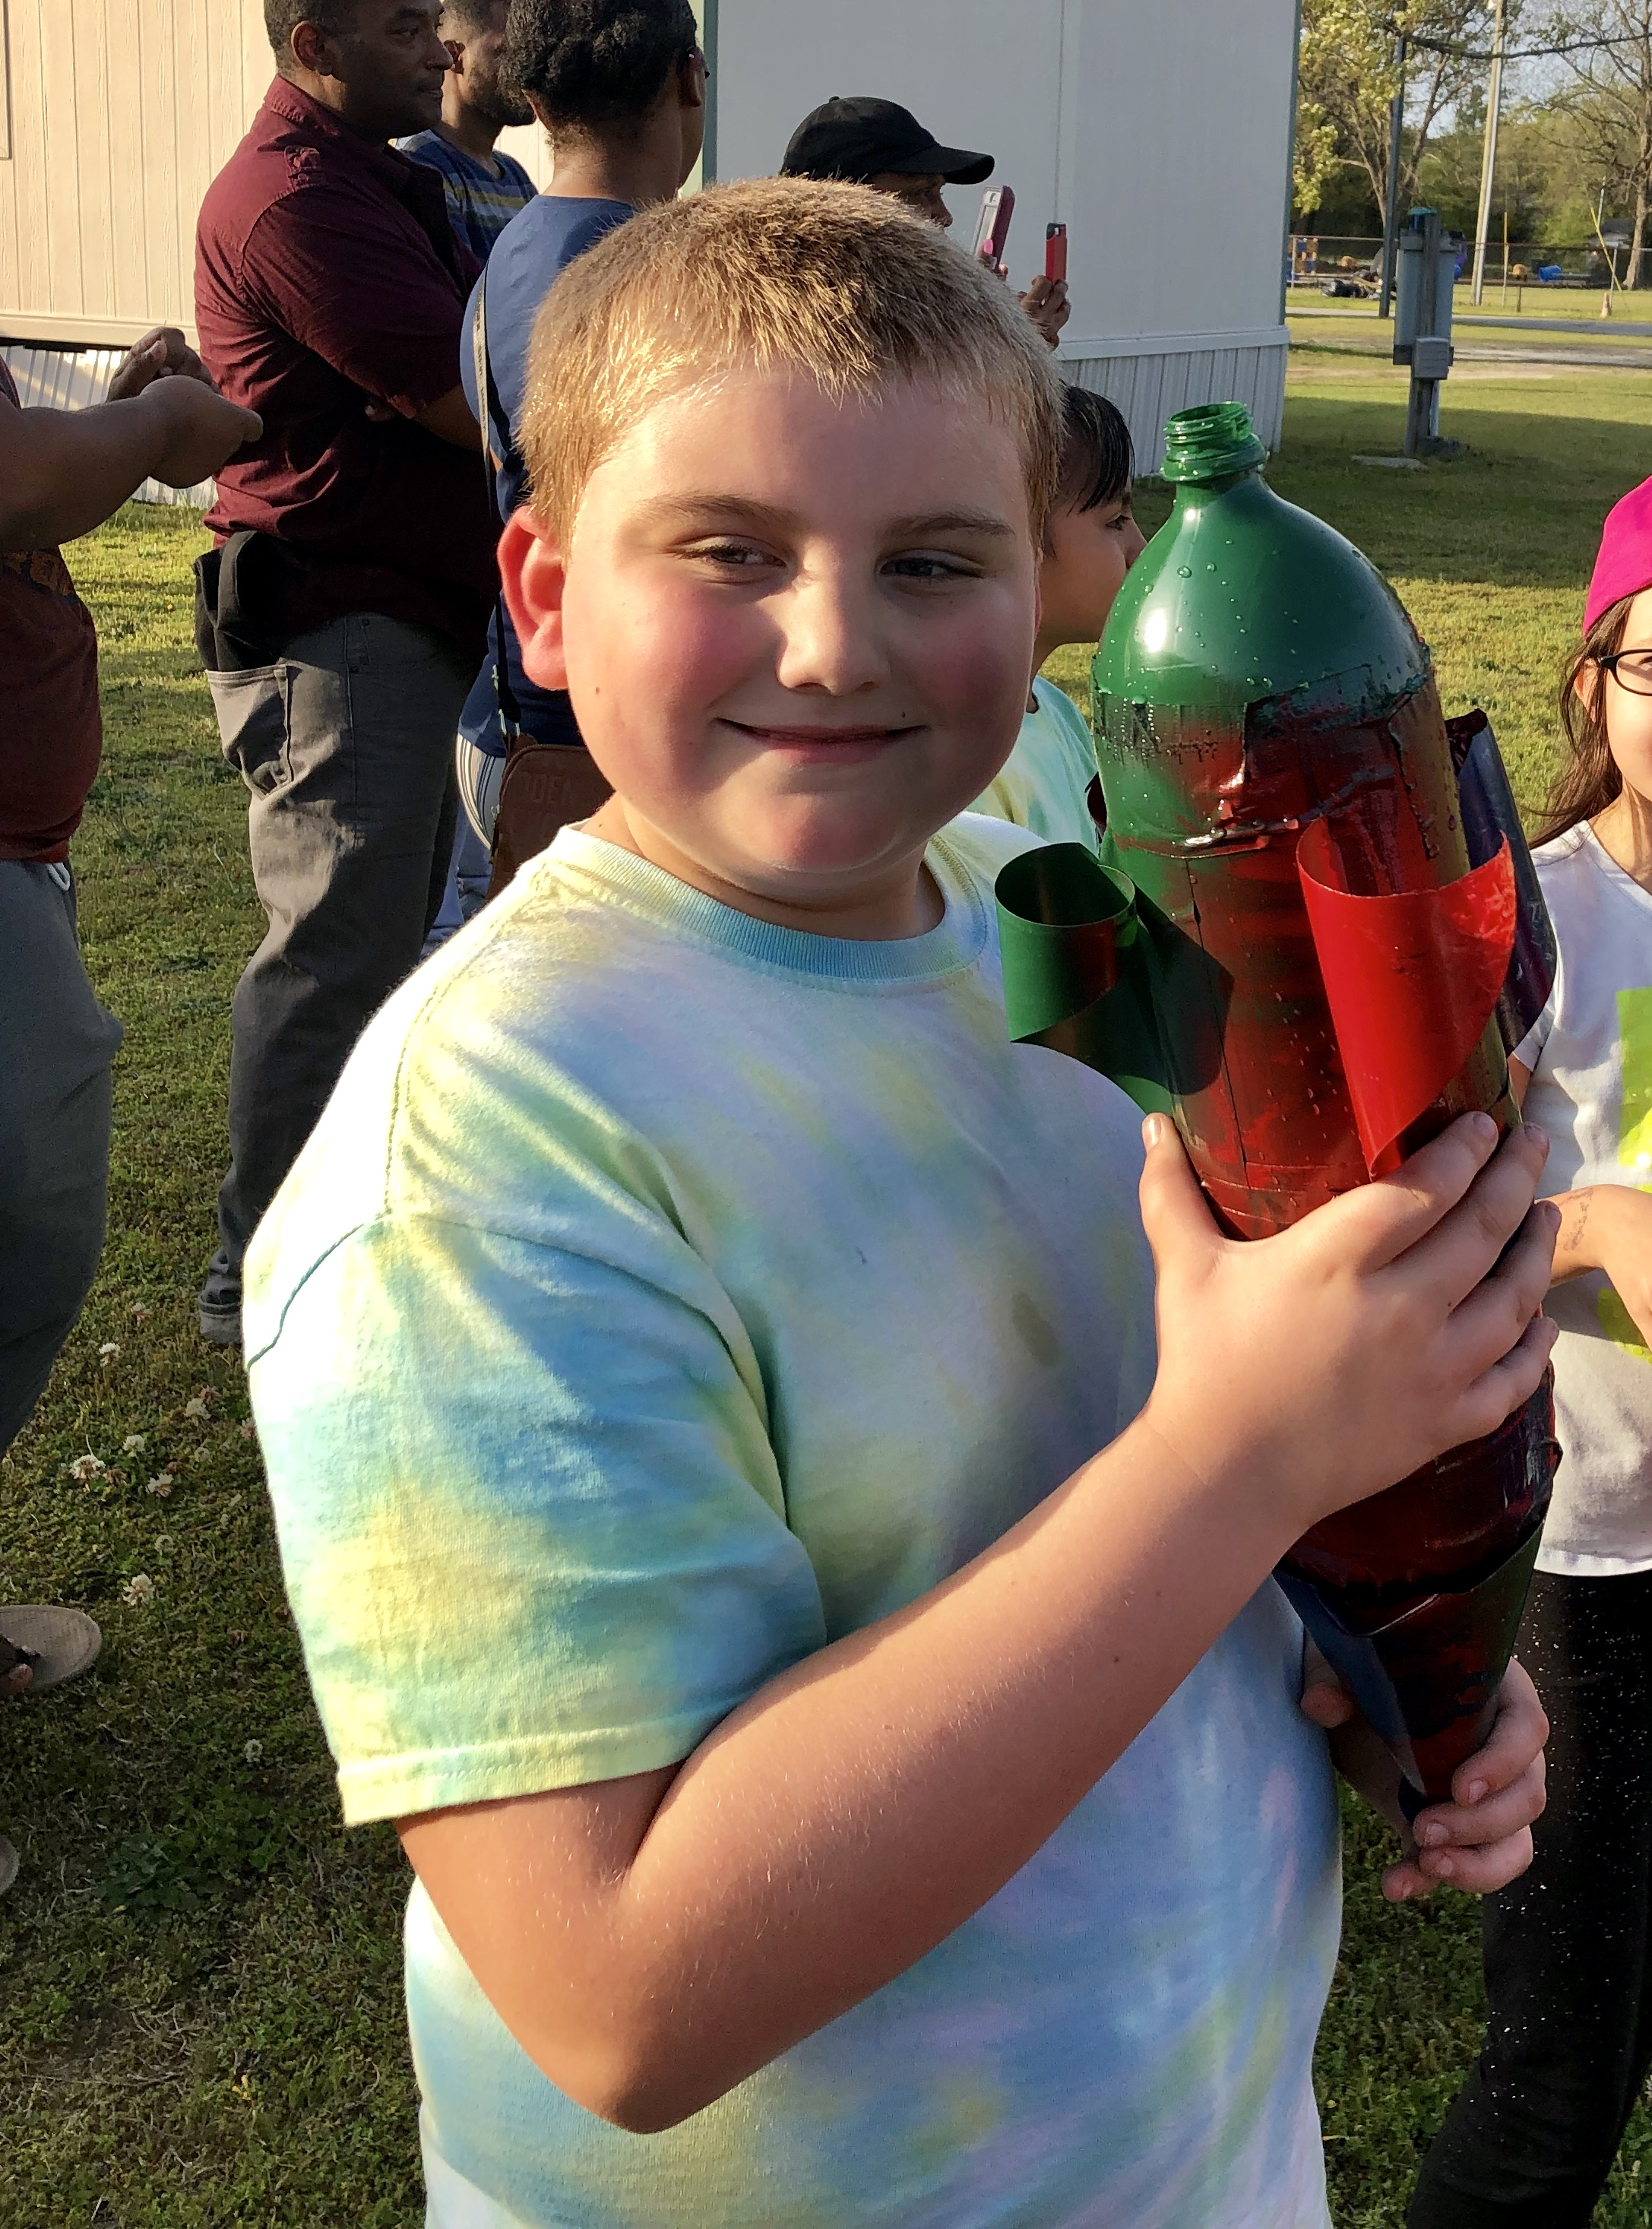 Third-grader Easton Vinson holds his rocket prior to shooting it off. Photo by Catherine Hardee / Neuse News